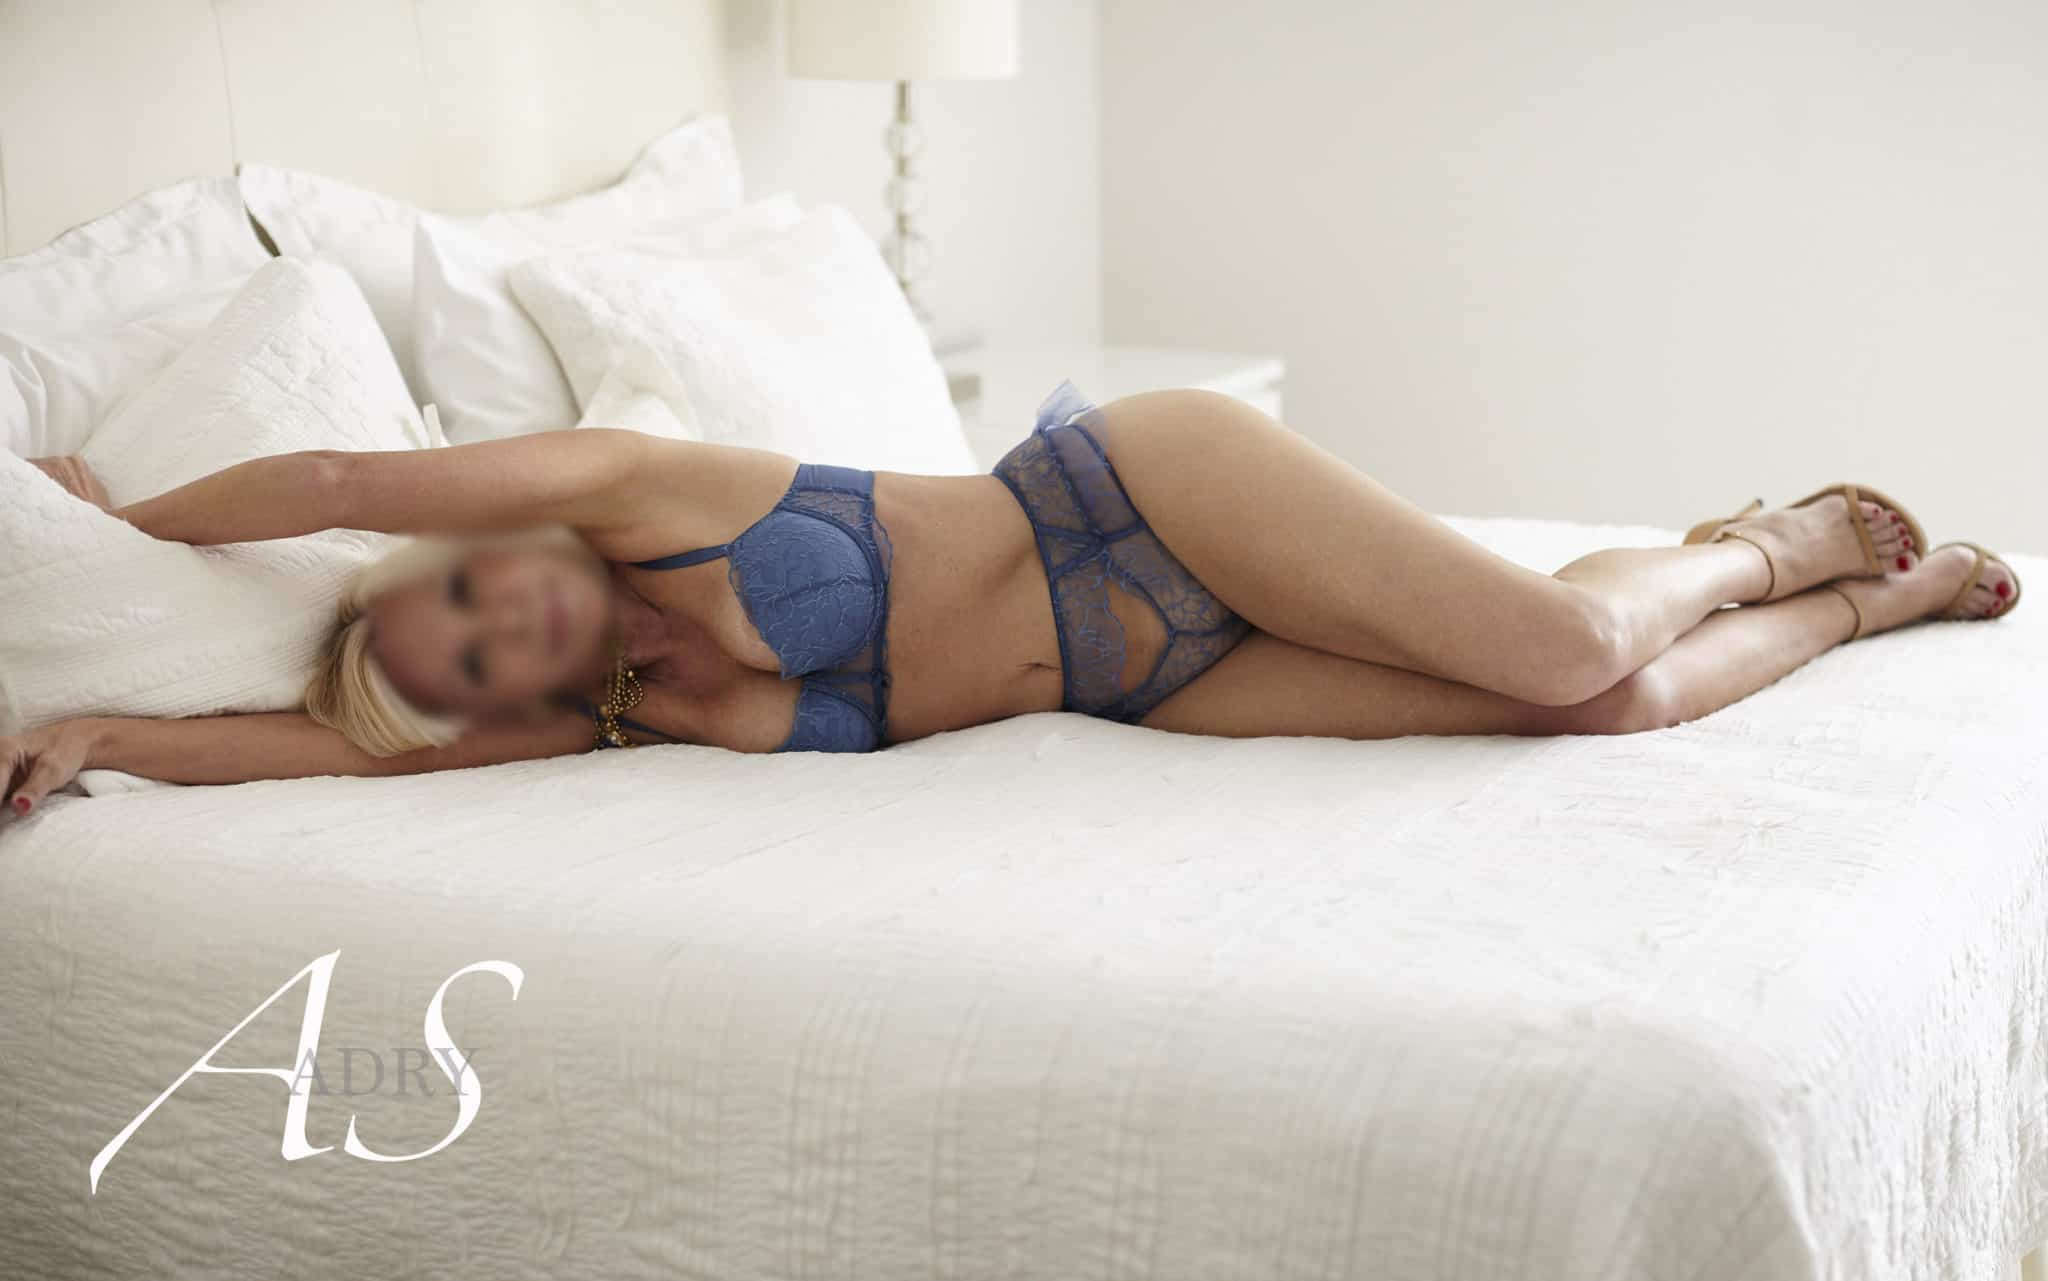 Blue lingerie miami escort